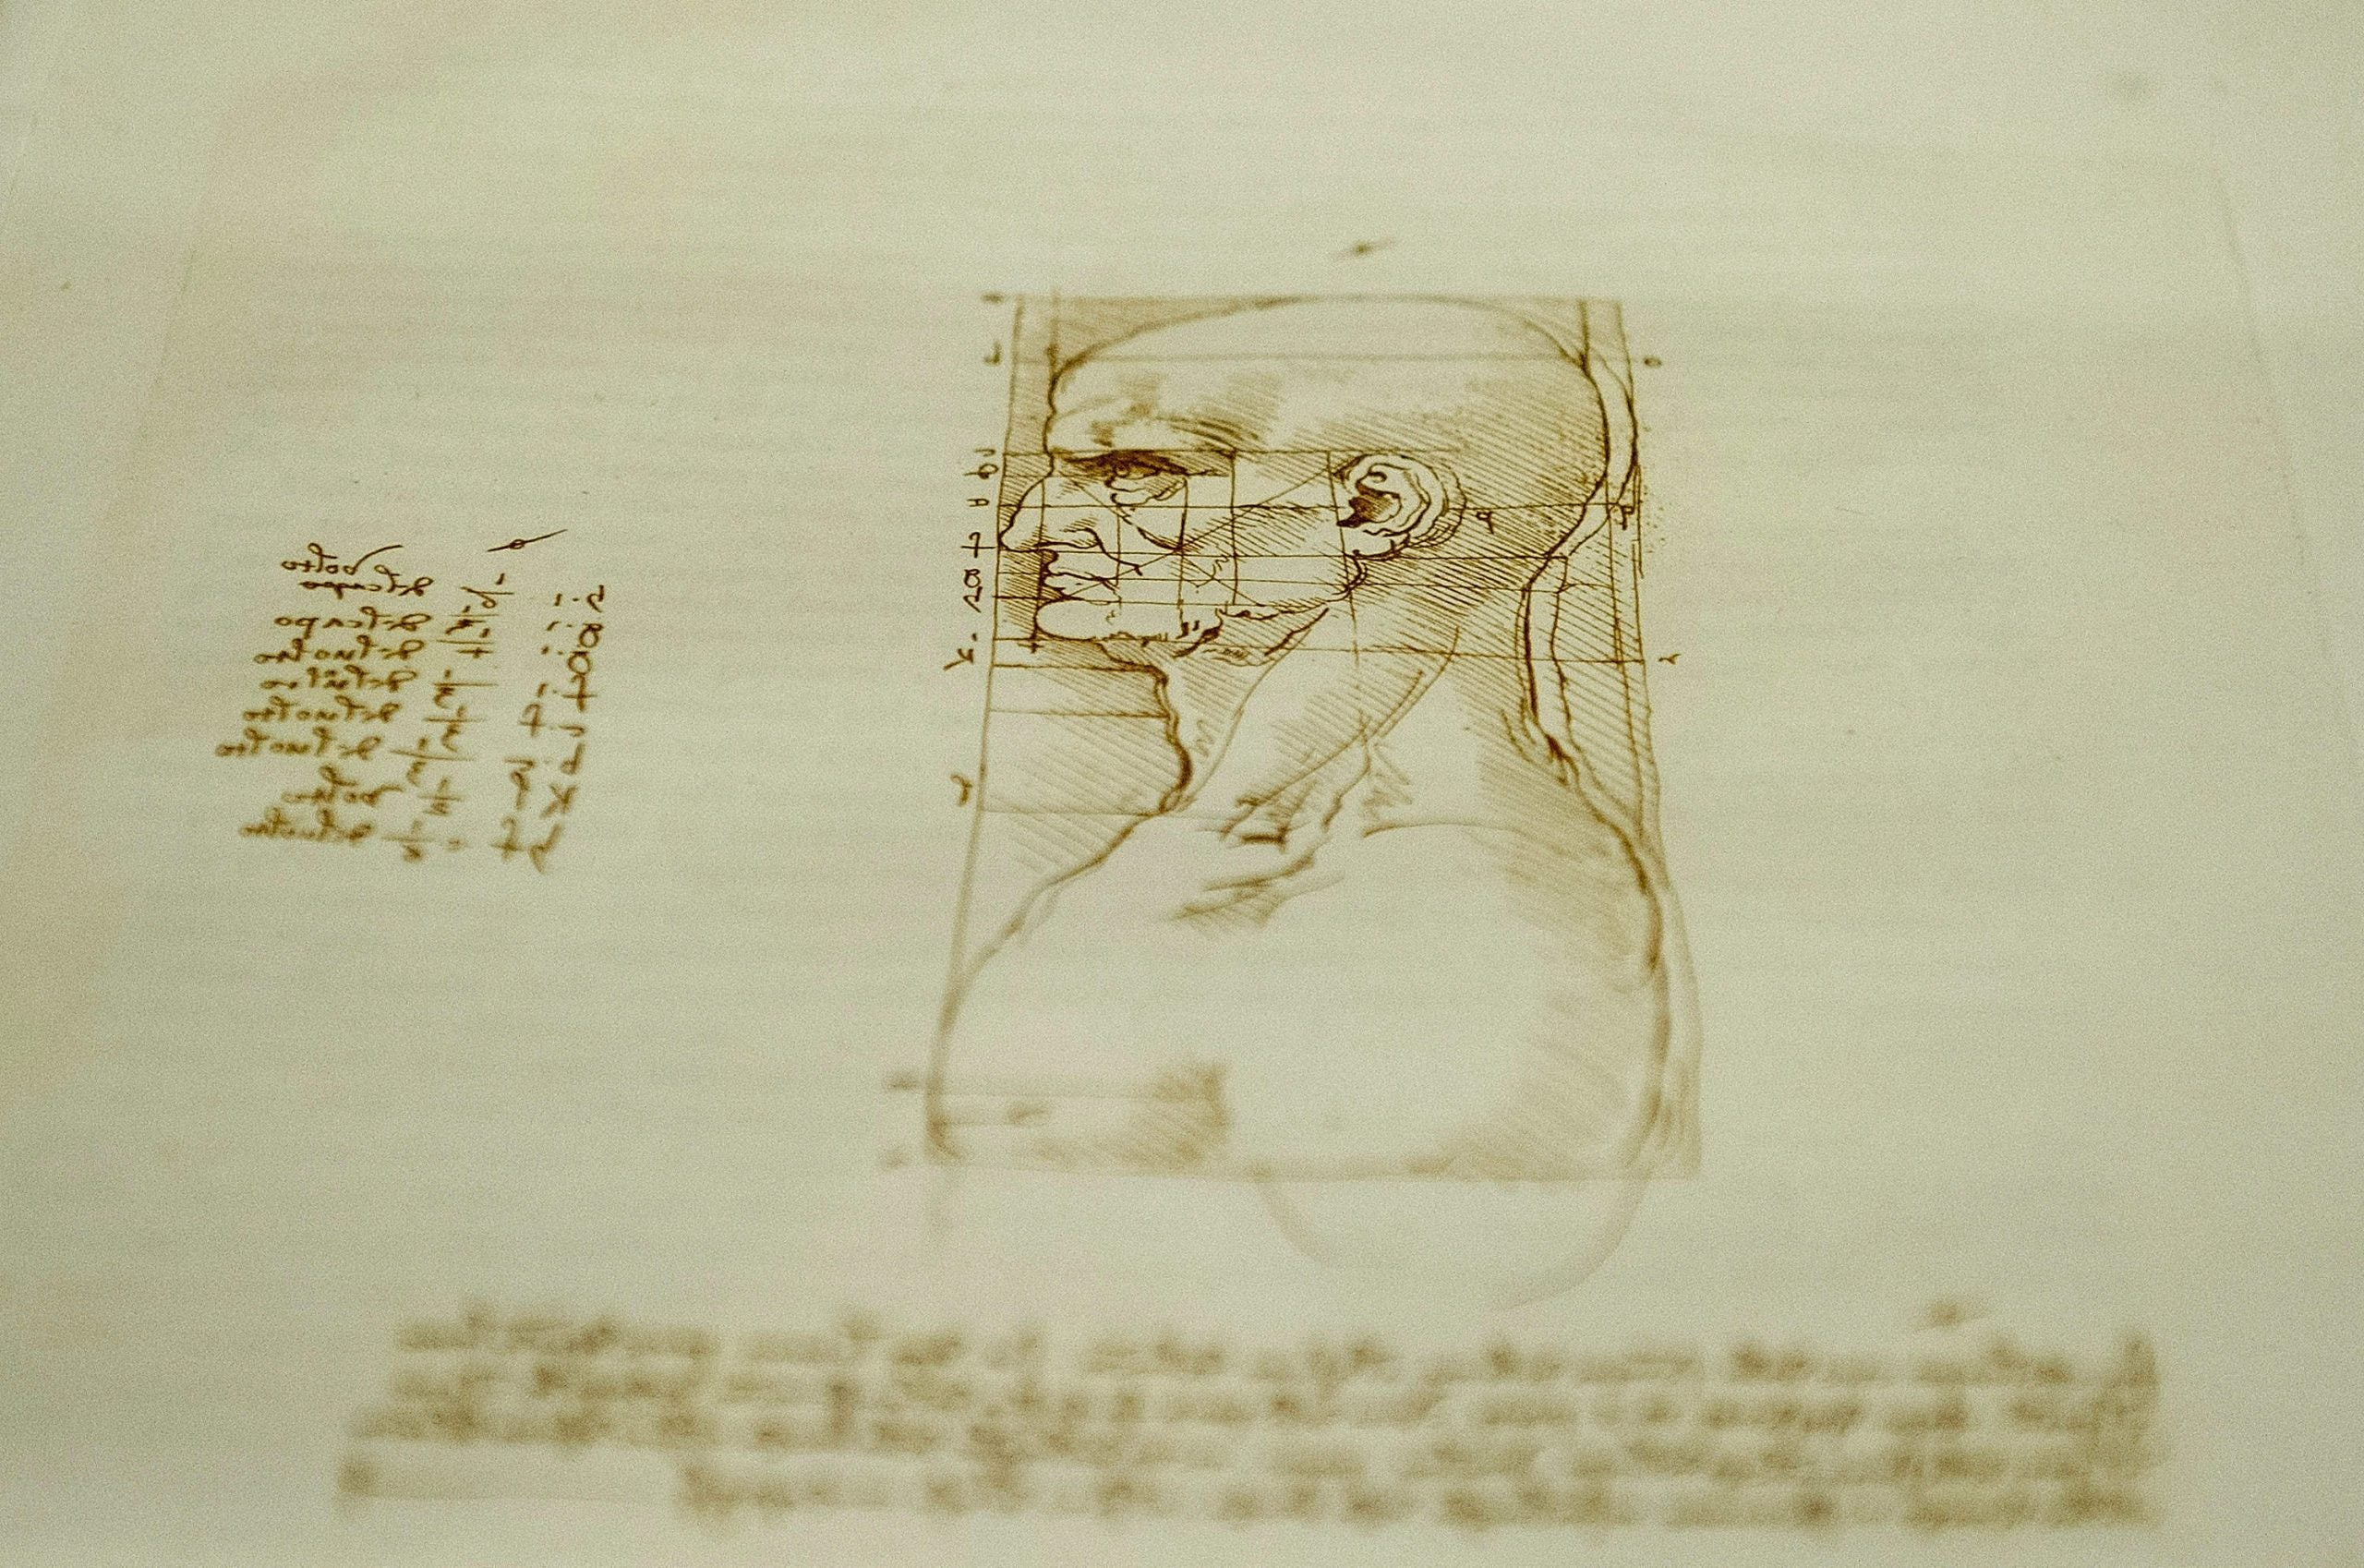 The Da Vinci Genome – how science drives art and art drives science